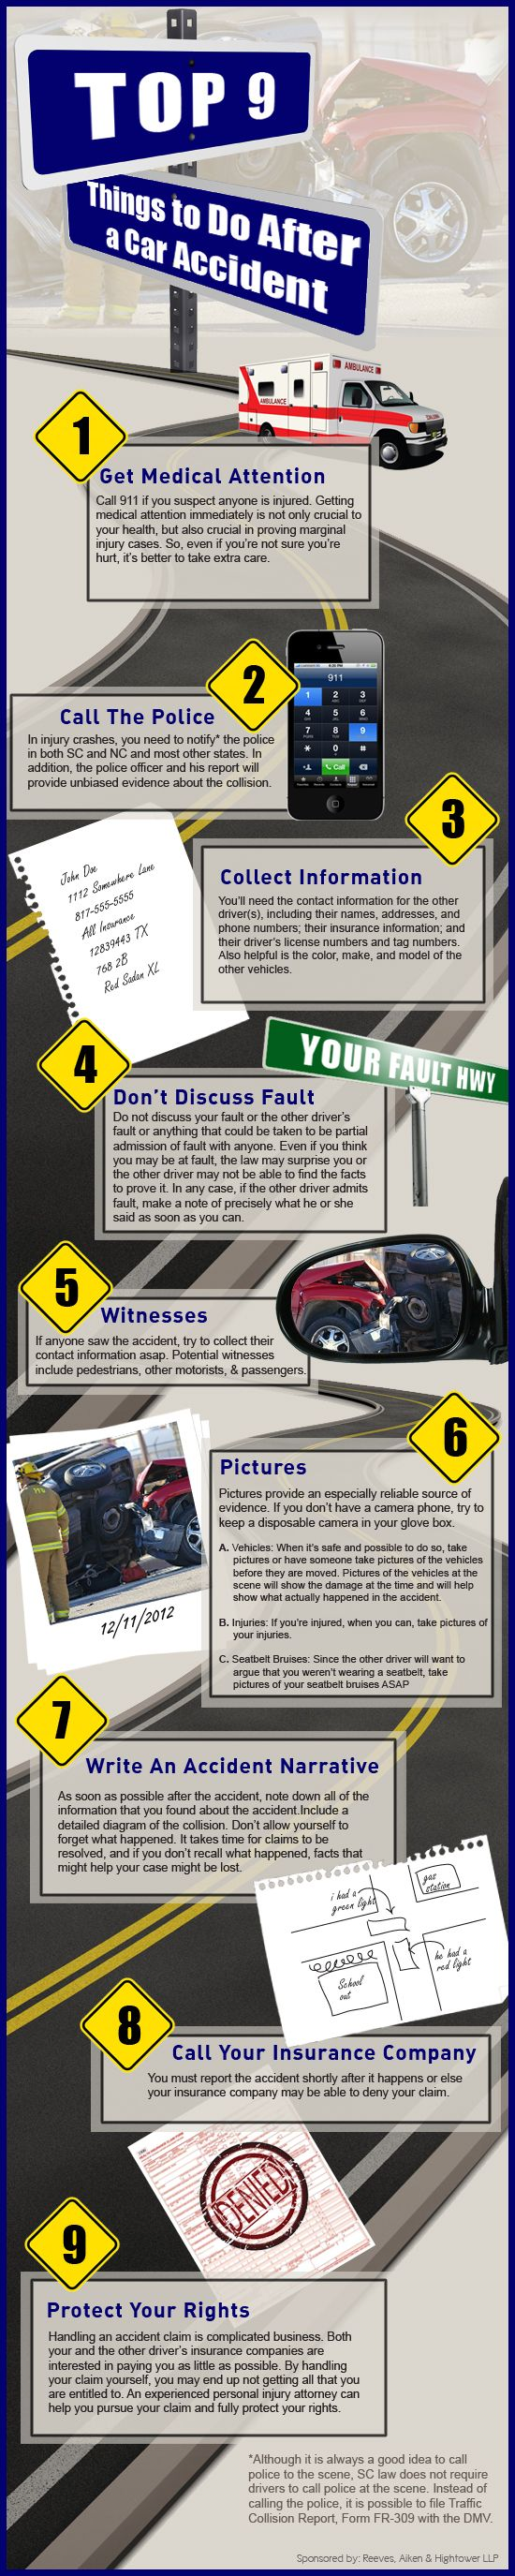 Color car with most accidents - Top 9 Things To Do After A Car Accident Infographic